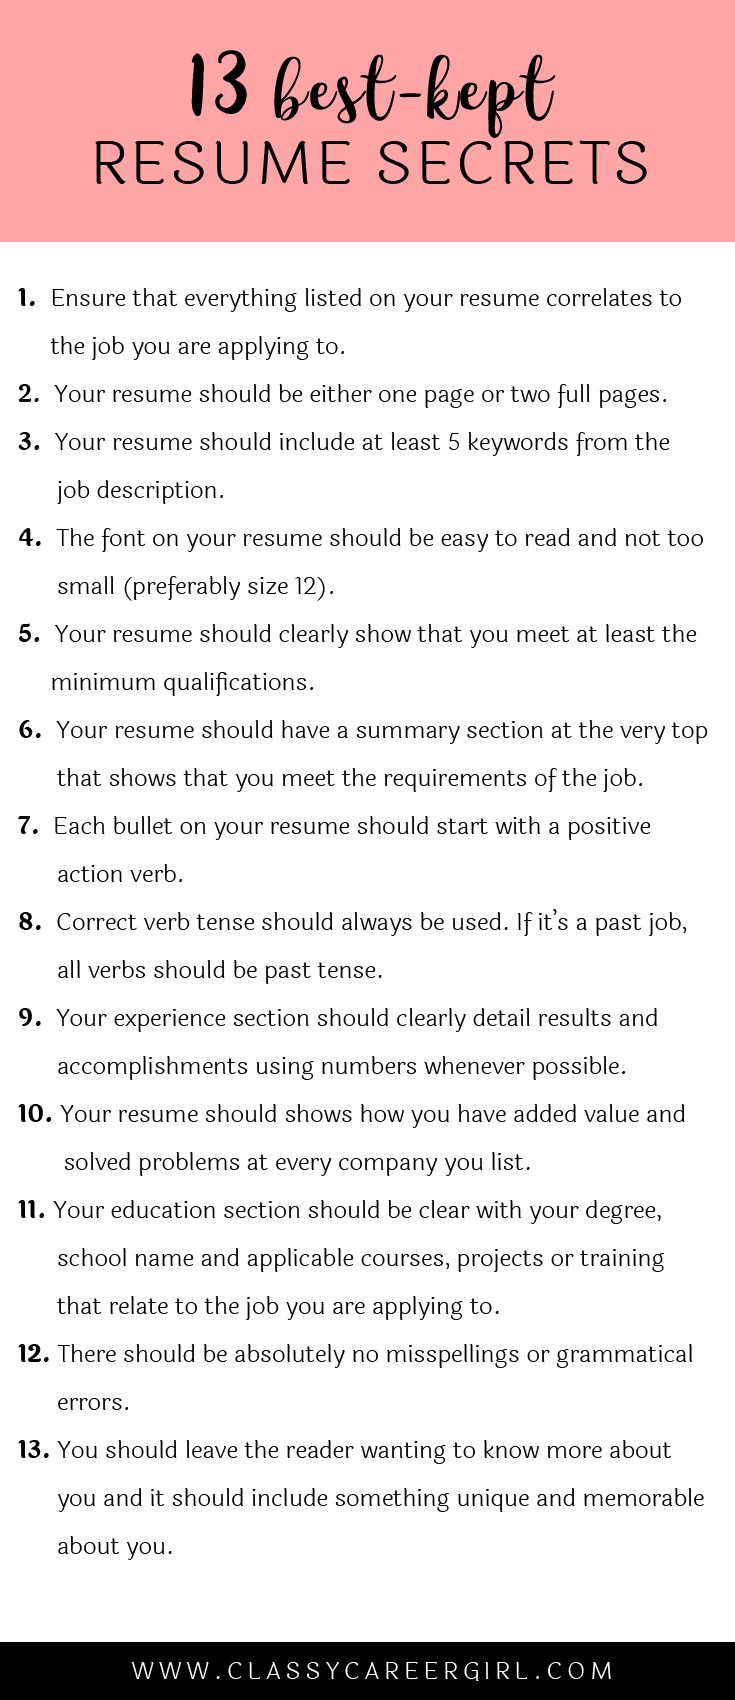 Opposenewapstandardsus  Prepossessing  Ideas About Resume On Pinterest  Cv Format Resume Cv And  With Handsome Some Hiring Managers Will Toss Your Resume Out If You Dont Know These  With Divine Software Engineer Resume Summary Also Resume For Hotel Front Desk In Addition On Campus Job Resume And Resume Services Charlotte Nc As Well As Resume Tips For Highschool Students Additionally Resume Social Media From Pinterestcom With Opposenewapstandardsus  Handsome  Ideas About Resume On Pinterest  Cv Format Resume Cv And  With Divine Some Hiring Managers Will Toss Your Resume Out If You Dont Know These  And Prepossessing Software Engineer Resume Summary Also Resume For Hotel Front Desk In Addition On Campus Job Resume From Pinterestcom